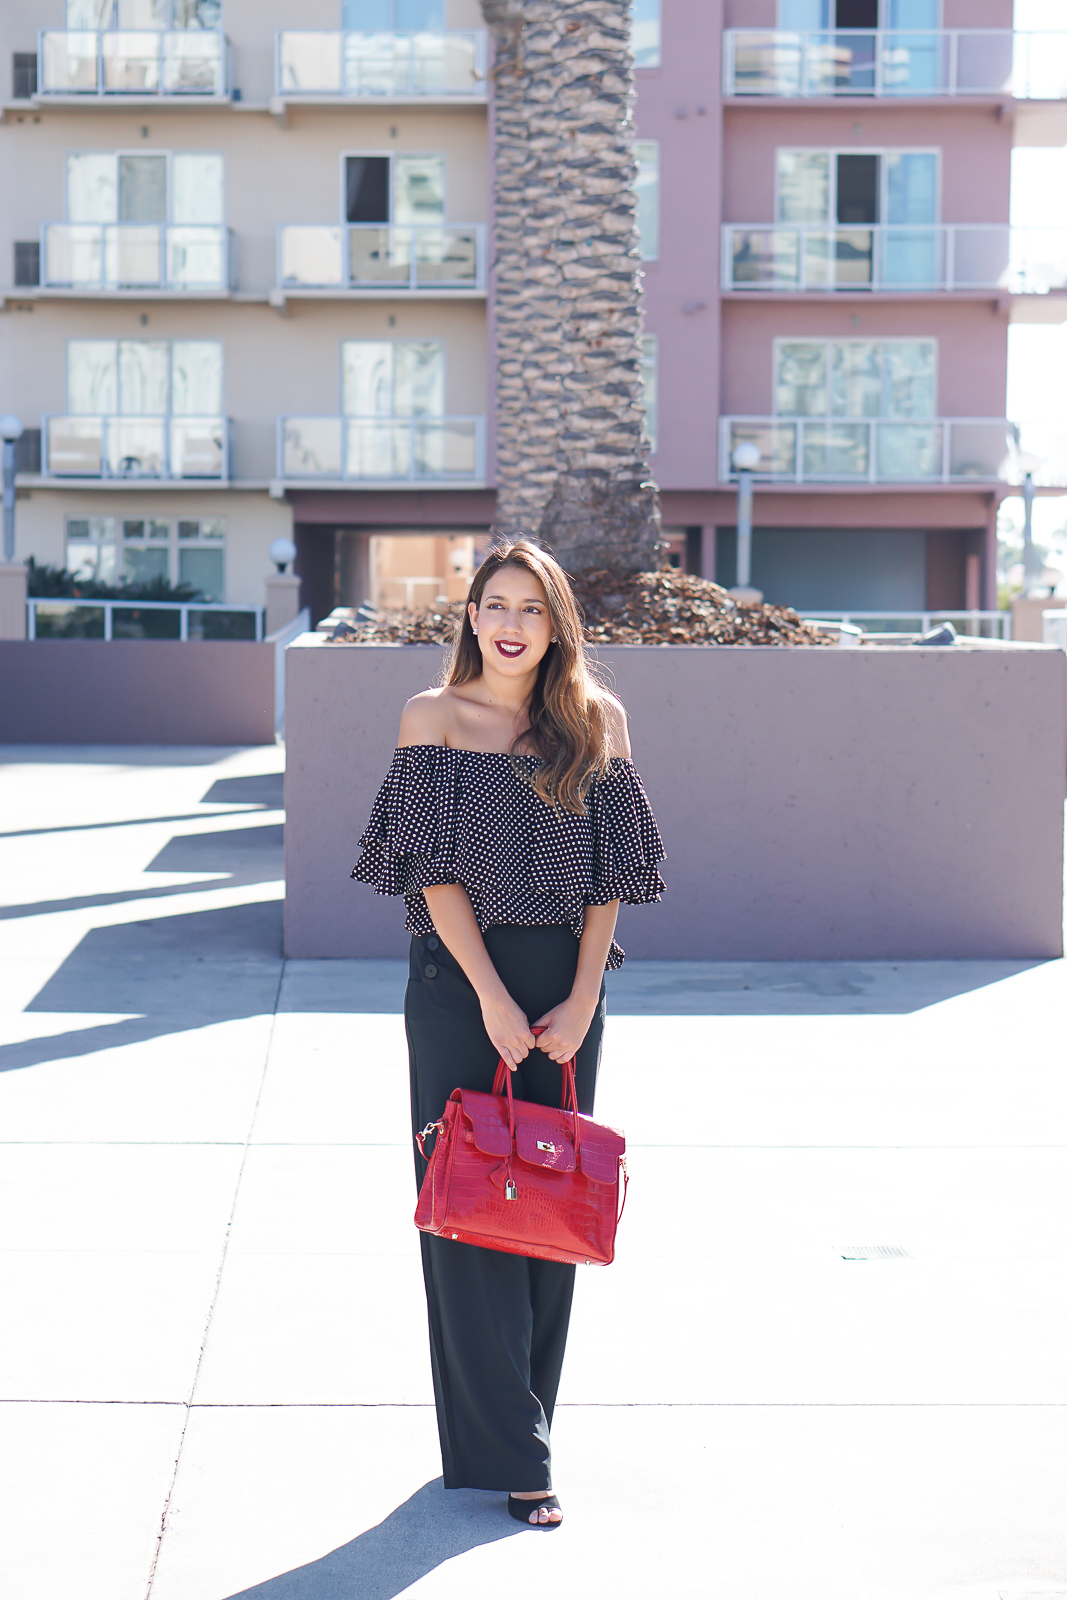 Fashion, SheIn Black Polka Dot Ruffle Off The Shoulder Blouse, How to wear off the shoulder tops, Women's Sailor Pant - Who What Wear x Target, Red top handle crocodile bag, Shoemint Heels, Diva Mac Red Lipstick, Latina Fashion Blogger, LA Fashion Blogger, Long Beach Performing Arts Center